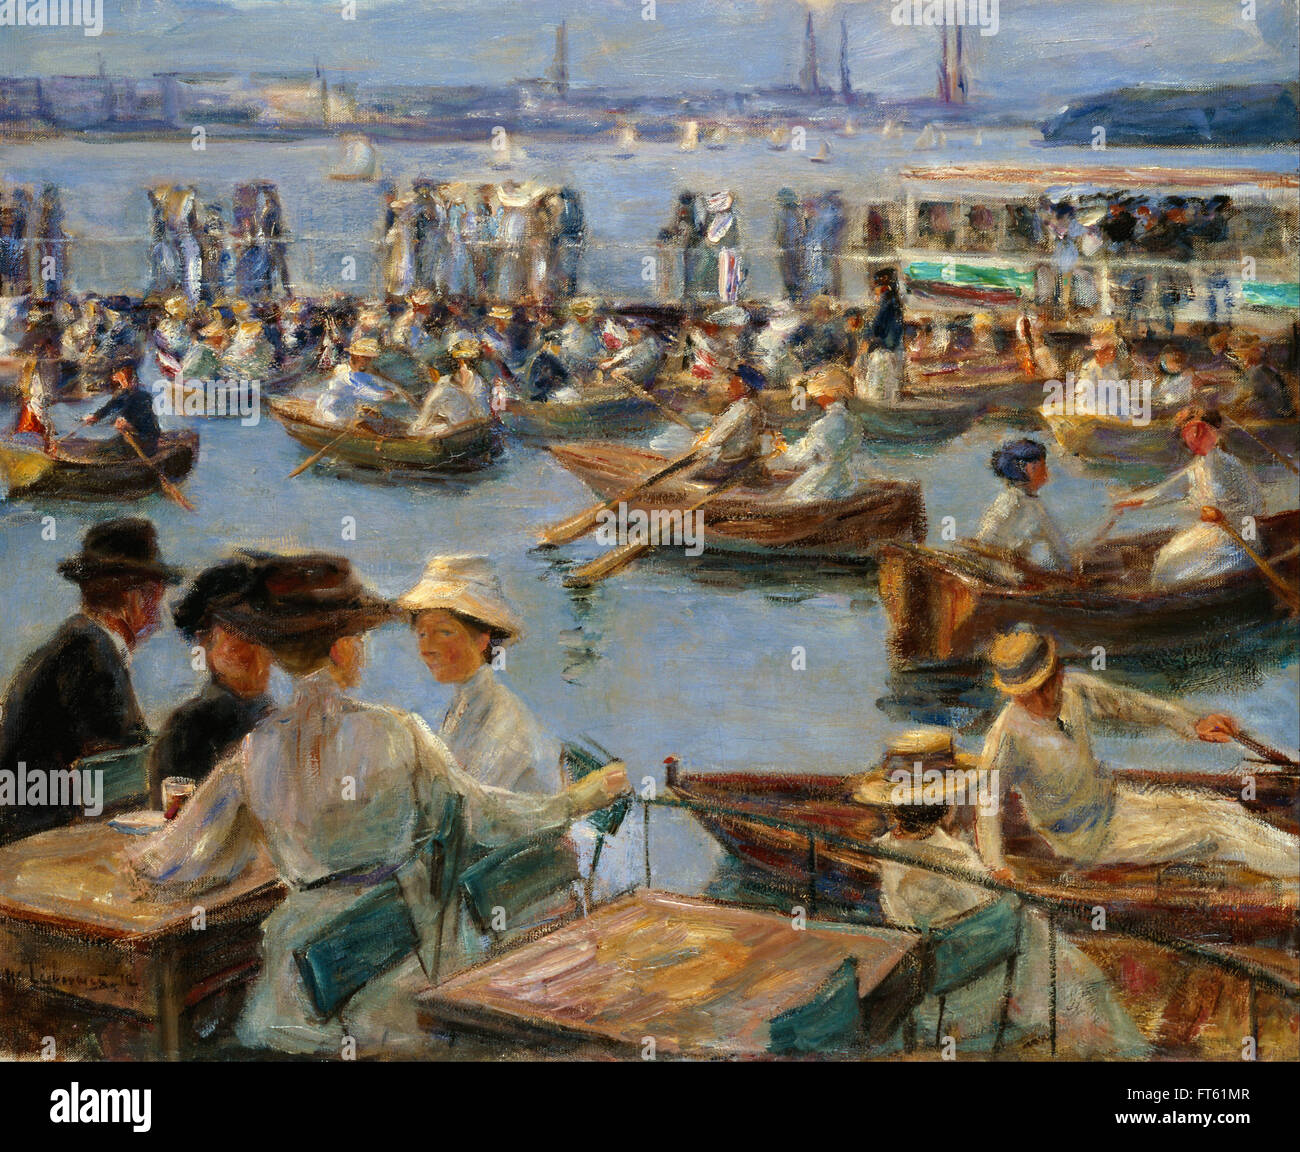 Max Liebermann - On the Alster in Hamburg - Galerie Neue Meister – New Masters Gallery Stock Photo